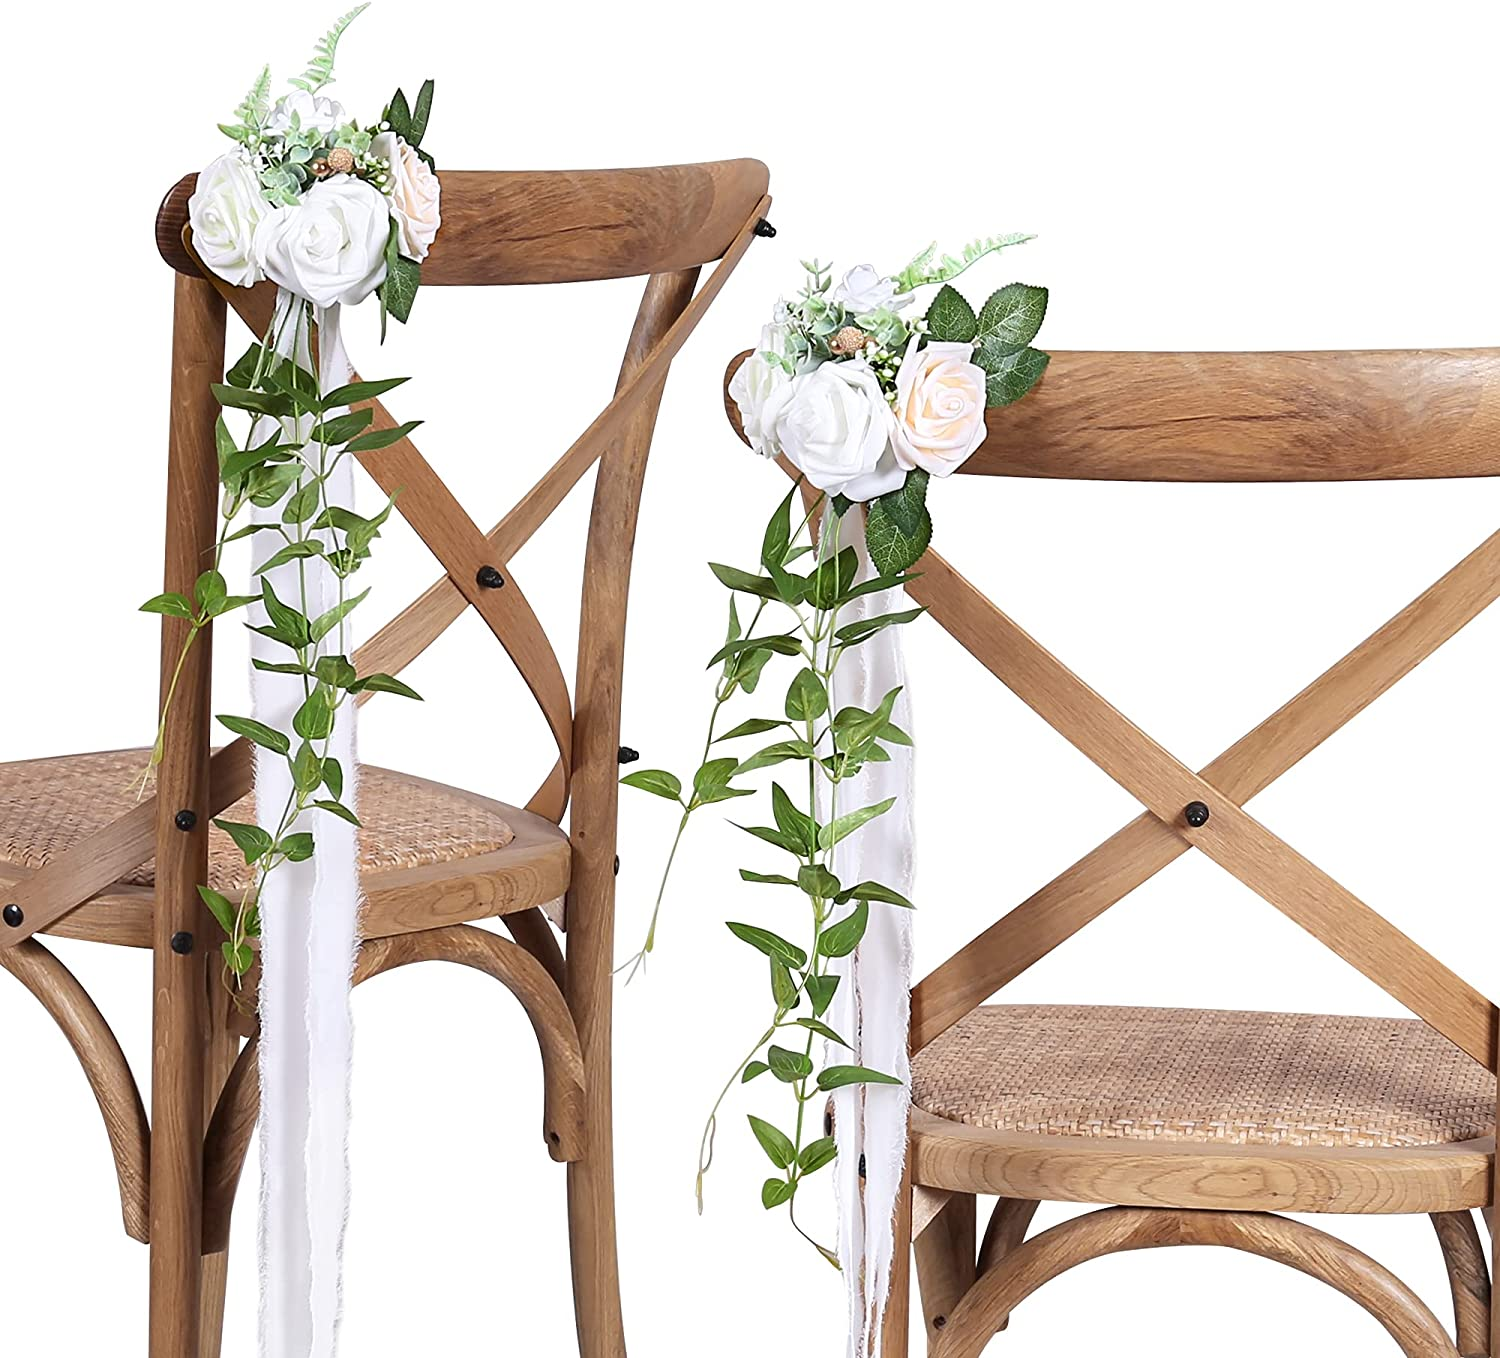 DORIS HOME Wedding Aisle Decorations White Pew Flowers Set of 10 for Wedding Ceremony Party Chair Decor with Artificial Flowers Eucalyptus and Ribbons